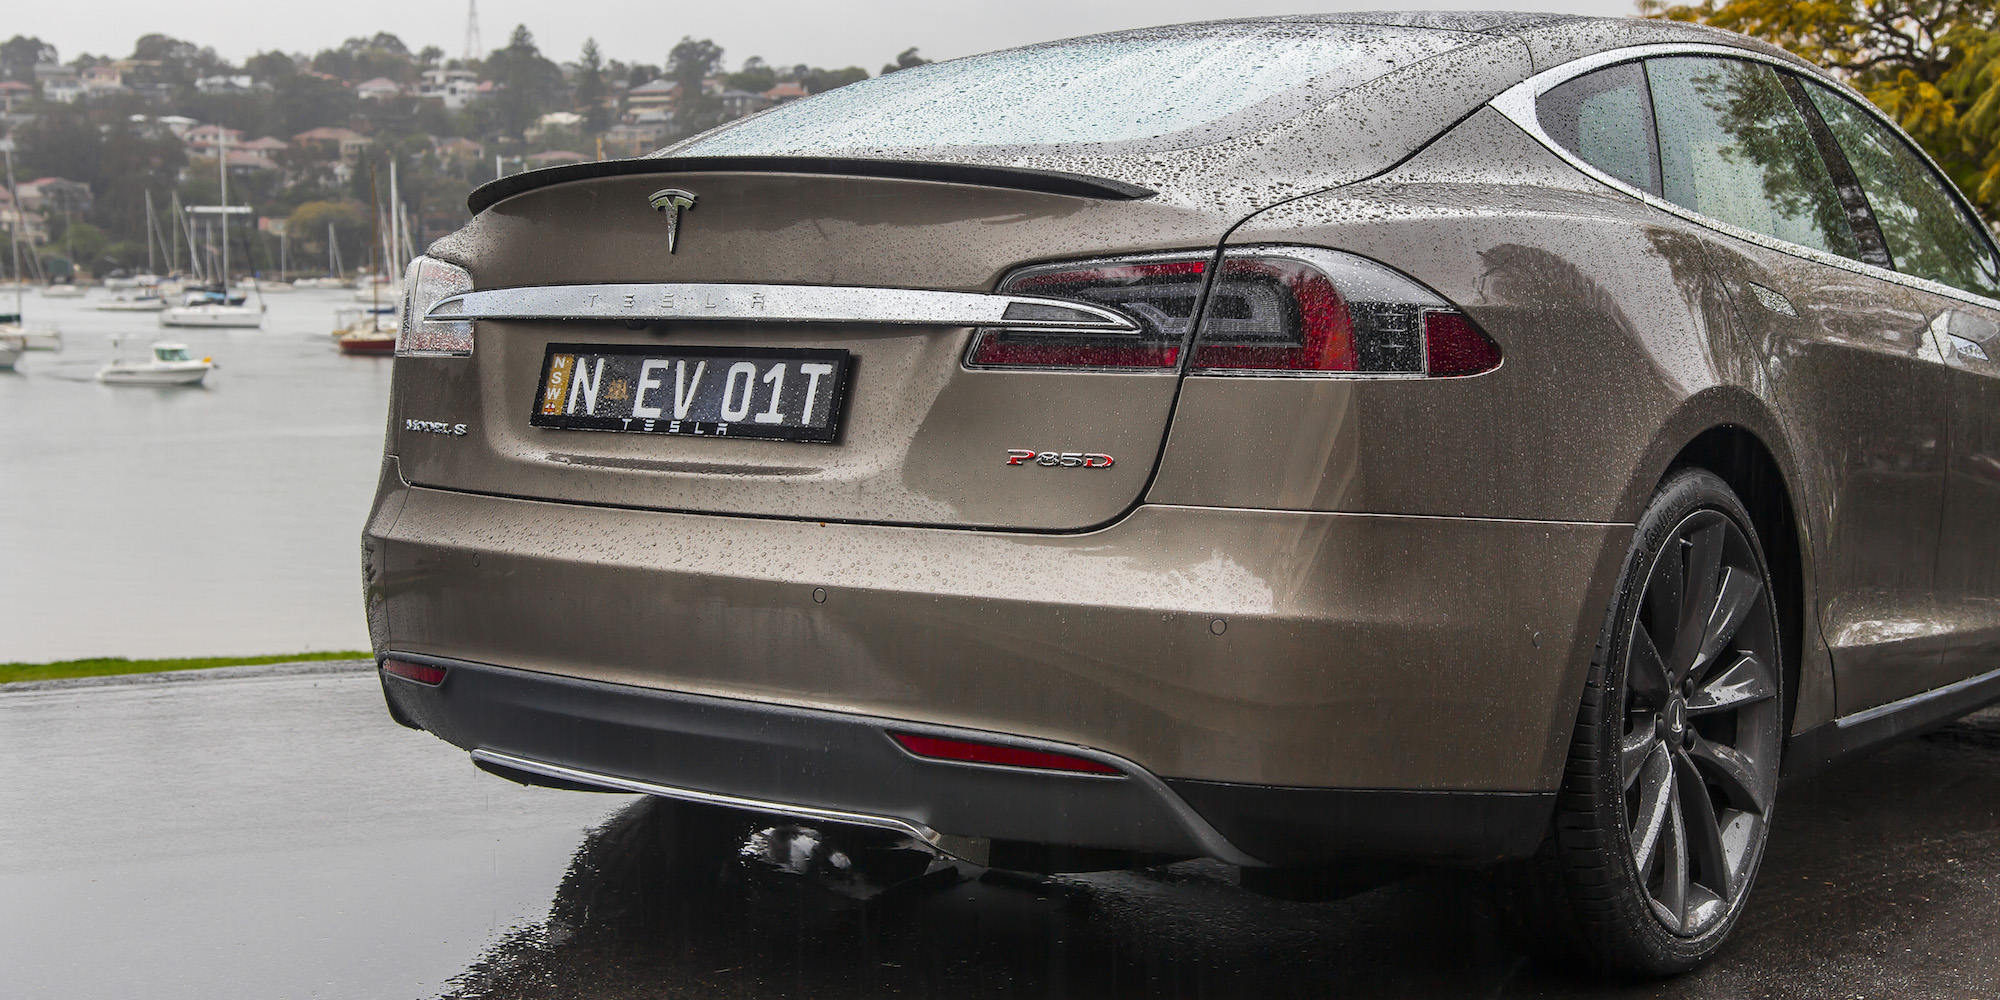 2015 Tesla Model S P85d Rear Body Close Up (Photo 33 of 37)